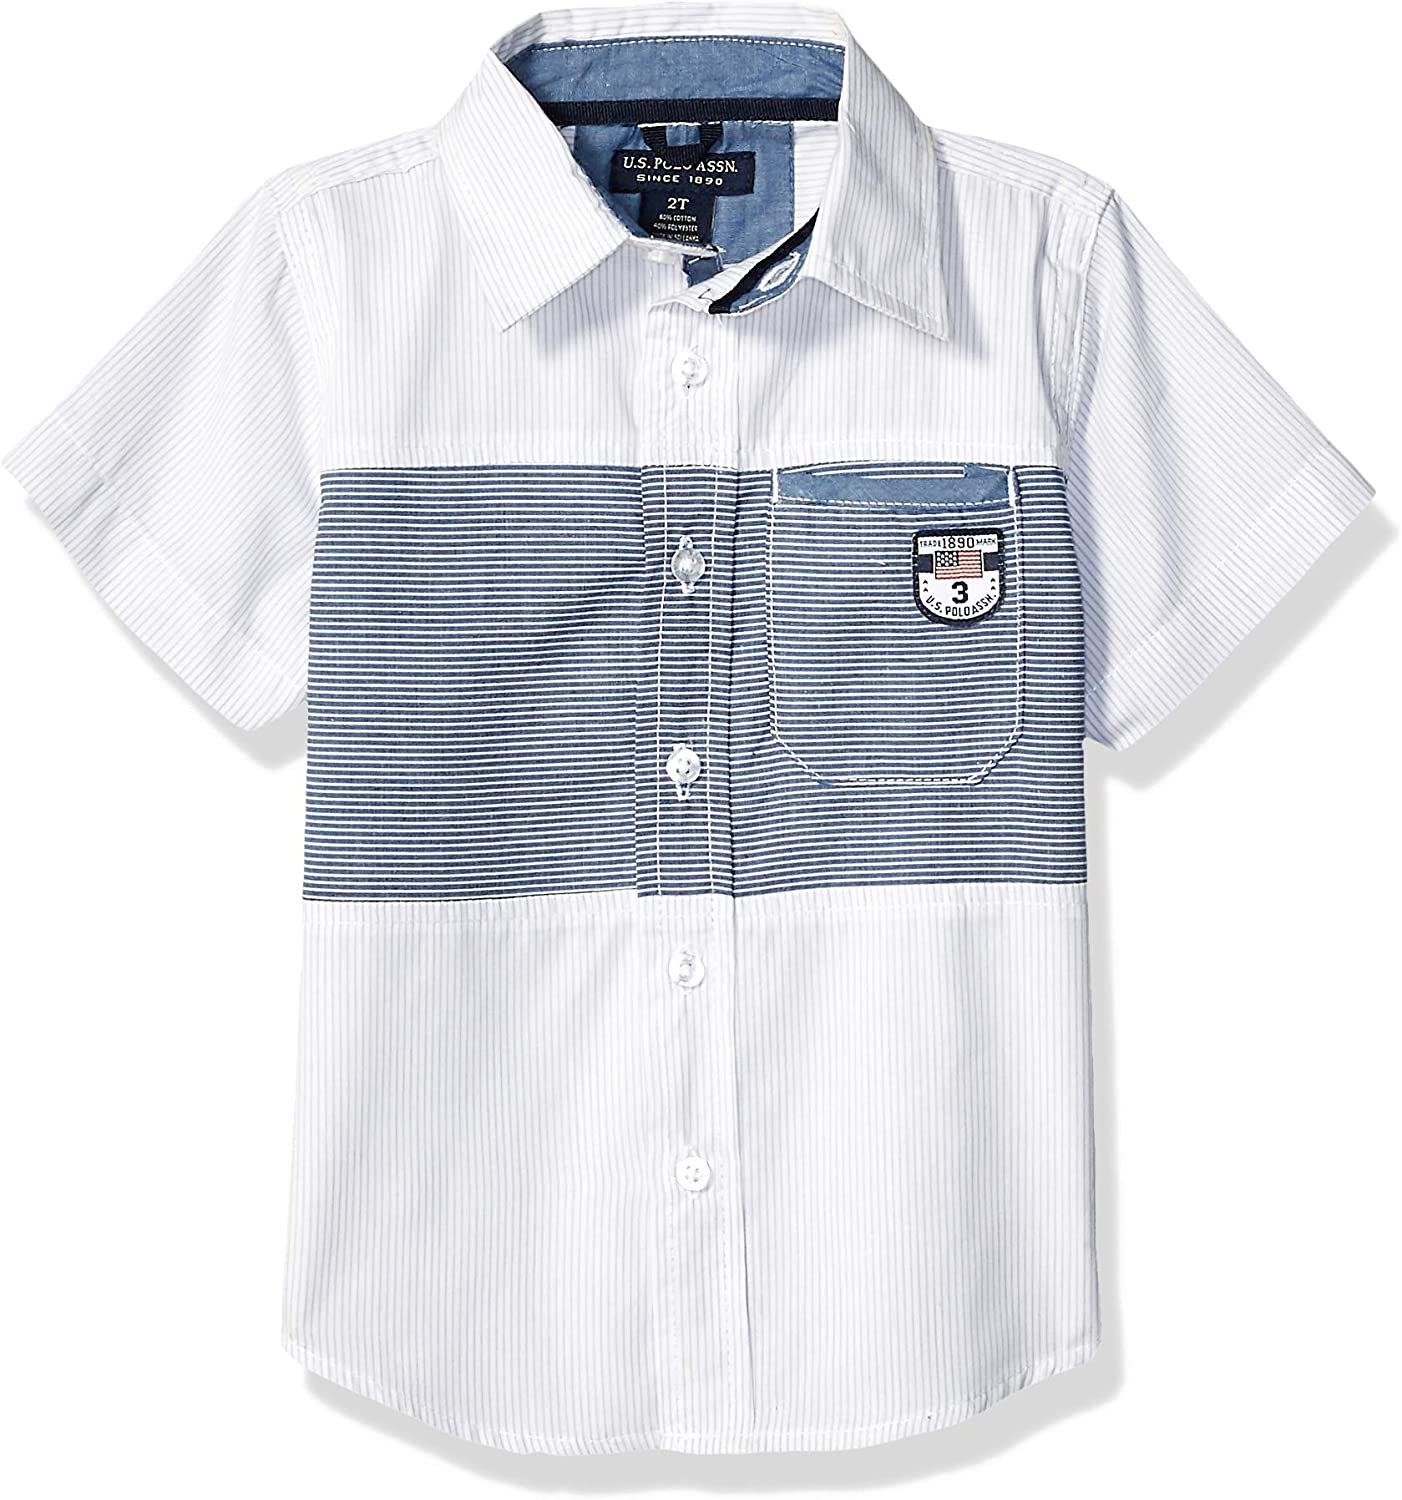 Boys Short Sleeve Striped Fashion Woven Shirt U.S Polo Assn